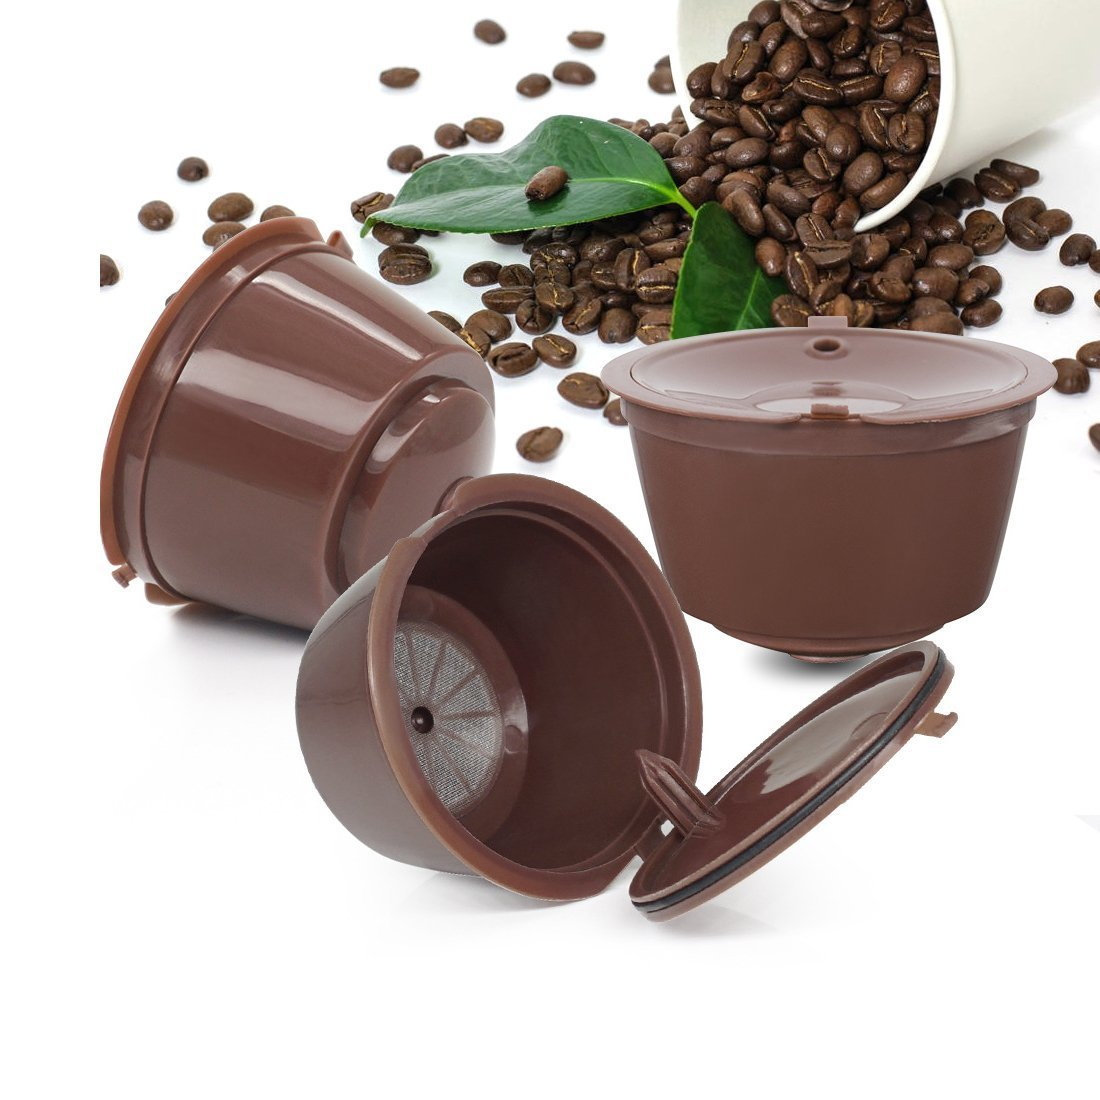 Webest Refillable Coffee Capsules For Nescafe Dolce Gusto Reusable Capsule Dolce Cup Filter